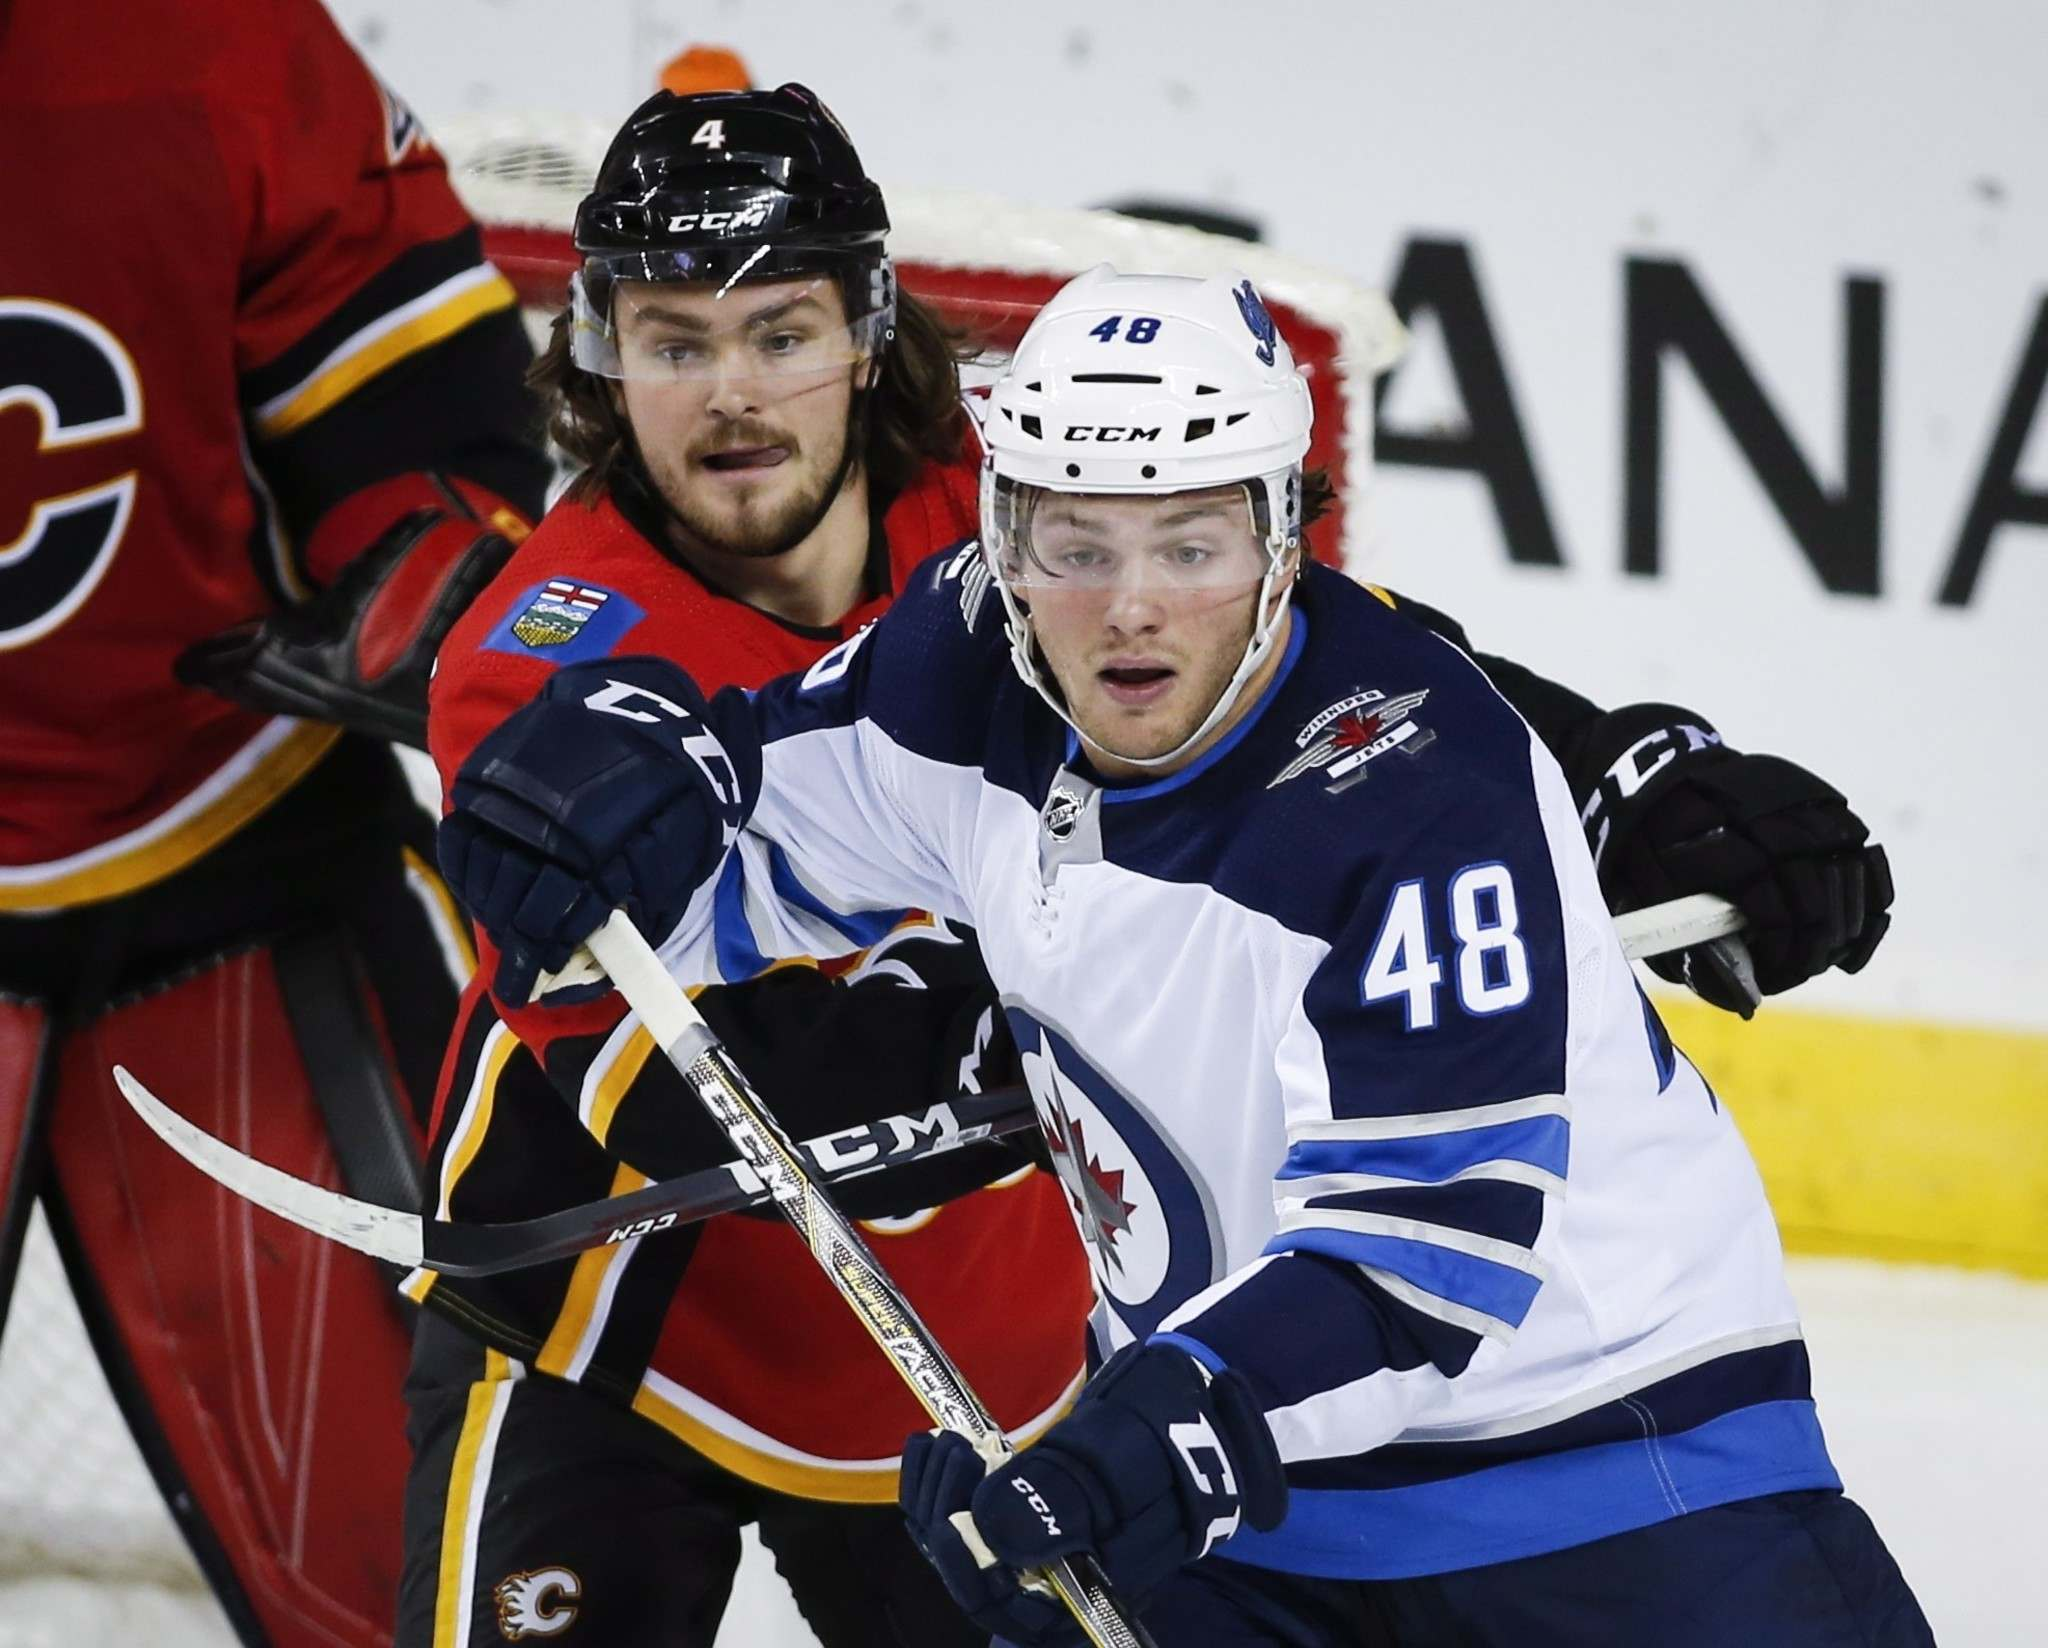 Avalanche claim Dano off waivers from Jets